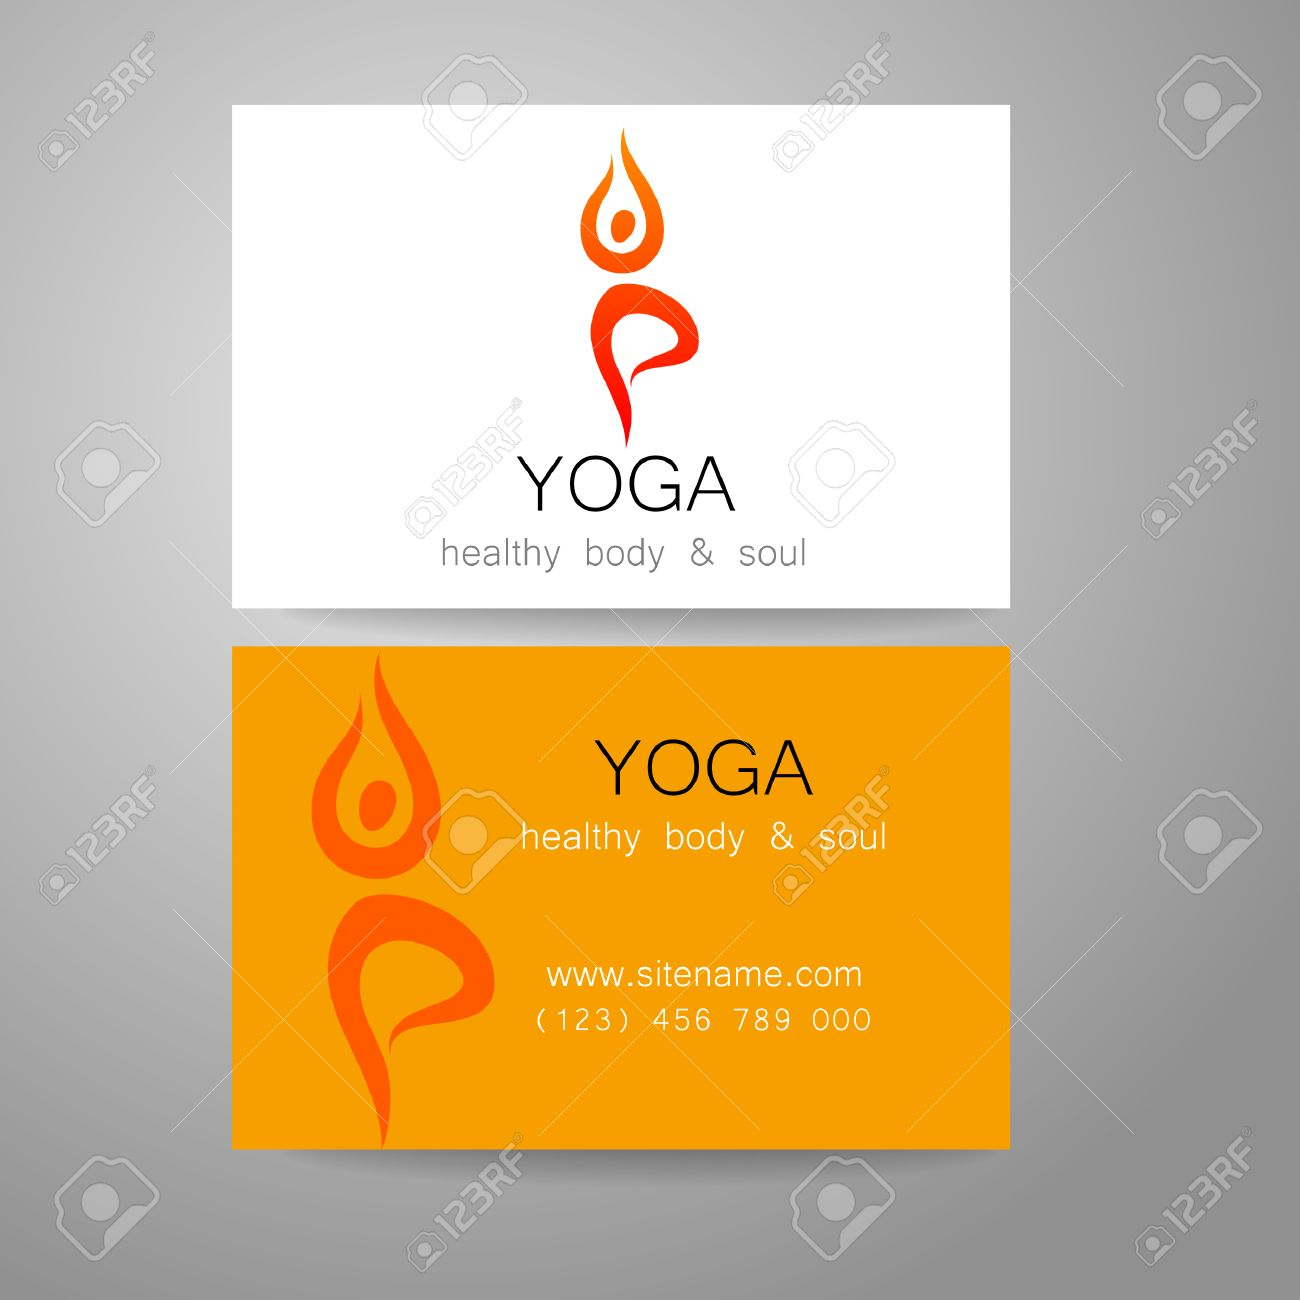 Yoga logo sign design and business cards template for yoga yoga logo sign design and business cards template for yoga studios classes reheart